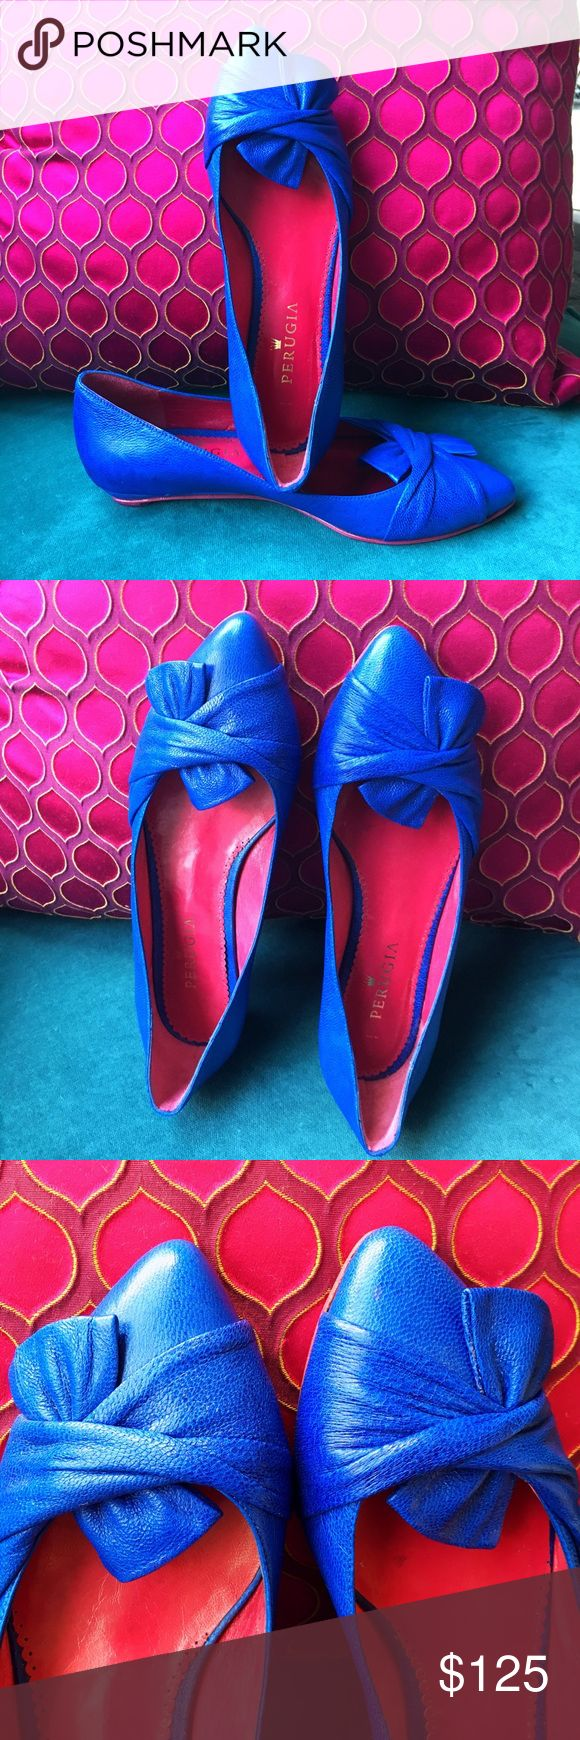 PERUGIA Electric Blue Hand Crafted Flats Never worn🔹 Purchased in Argentina🔹 Handcrafted gorgeous modern design🔹 Sheepskin and cowhide🔹 in the most stunning blue with hot pink bottoms and interior.🔹 Perugia Shoes